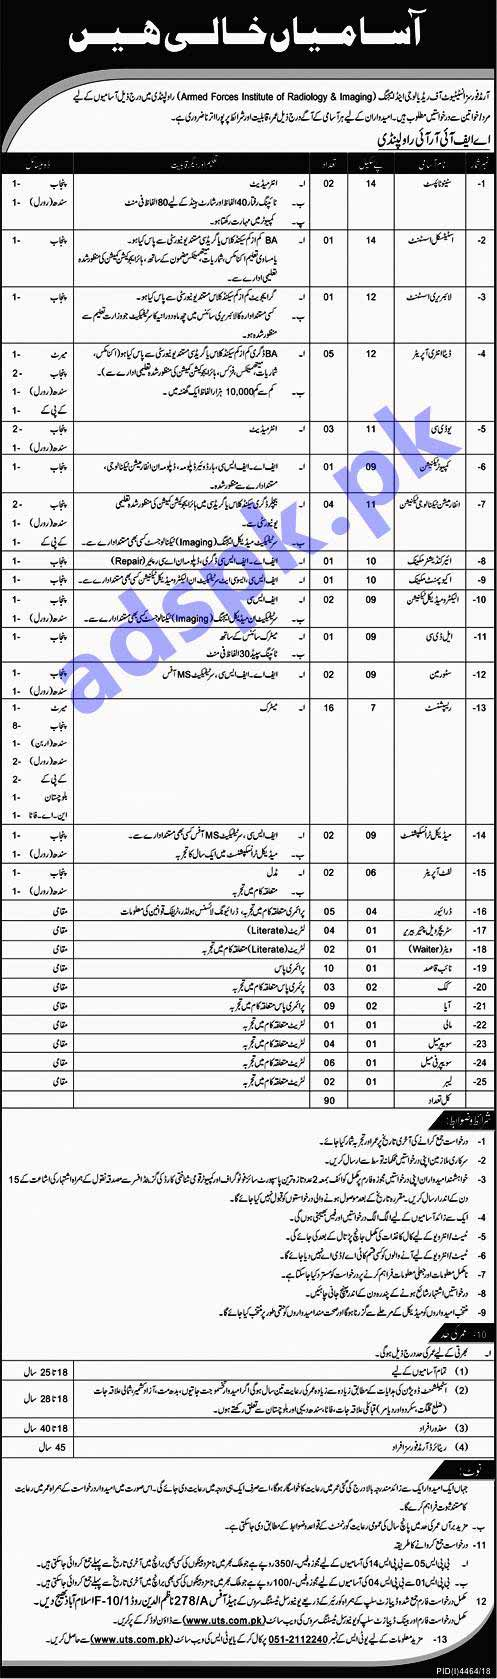 Armed Forces Institute of Radiology & Imaging AFIRI Rawalpindi Jobs 2019 UTS Written Test MCQs Syllabus Paper for Steno Typist Statistical Assistant Data Entry Operator UDC Information Technology Technician Receptionist Jobs Application Form Deadline 08-04-2019 Apply Now